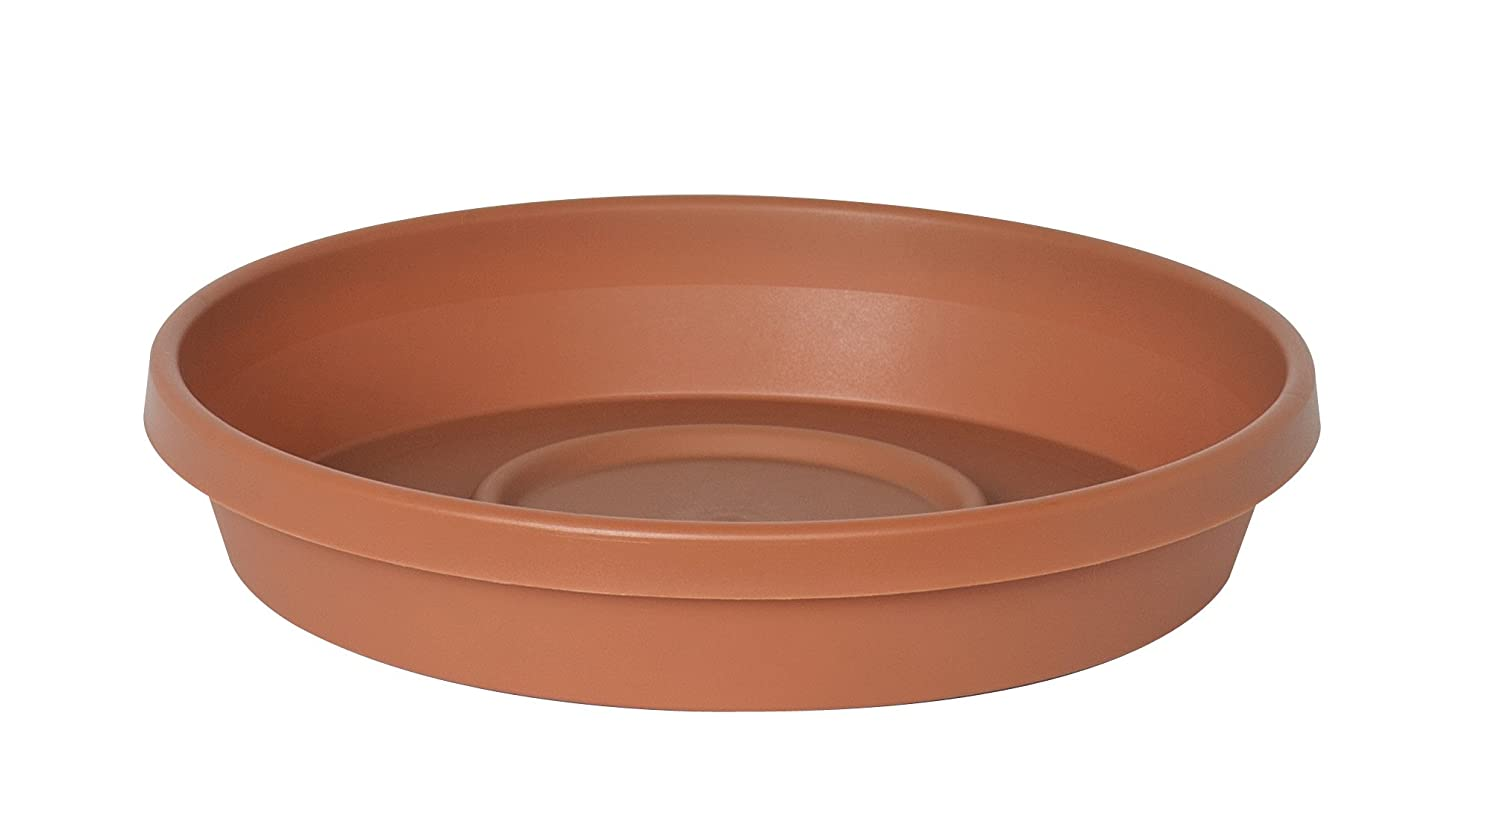 Fiskars 51020C 20-Inch outside diameter Terratray Planter Tray, Color Clay